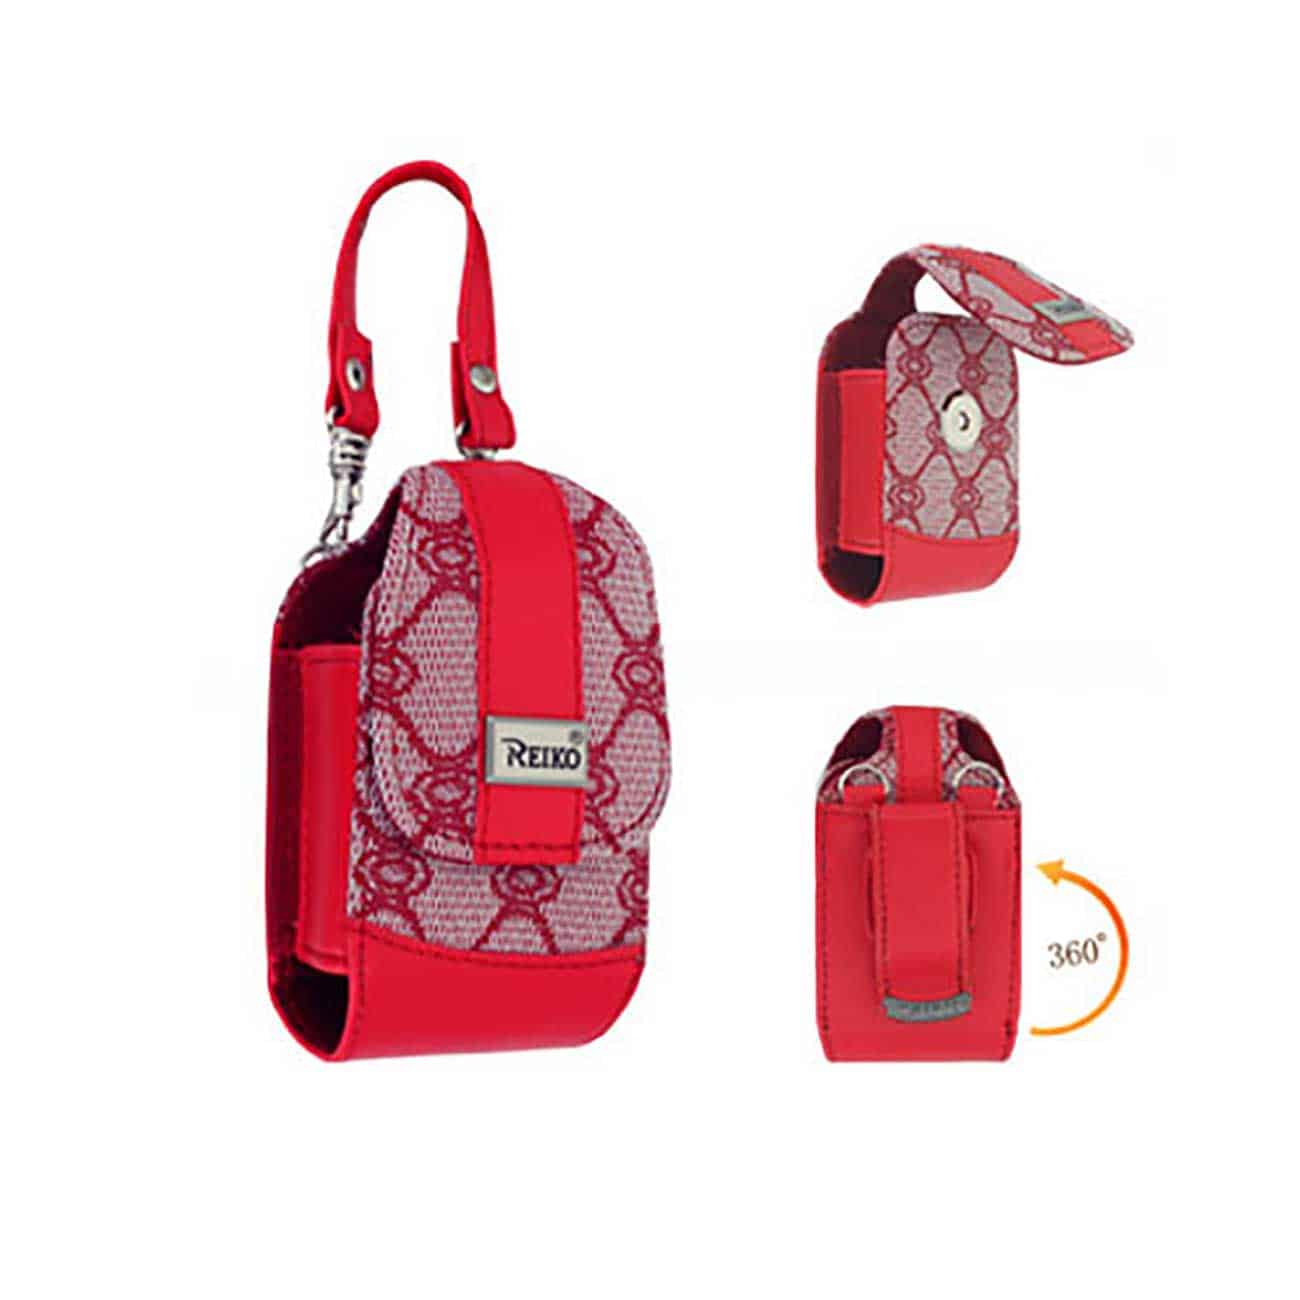 VERTICAL POUCH VP82 S RED 3.5X1.9X0.9 INCHES